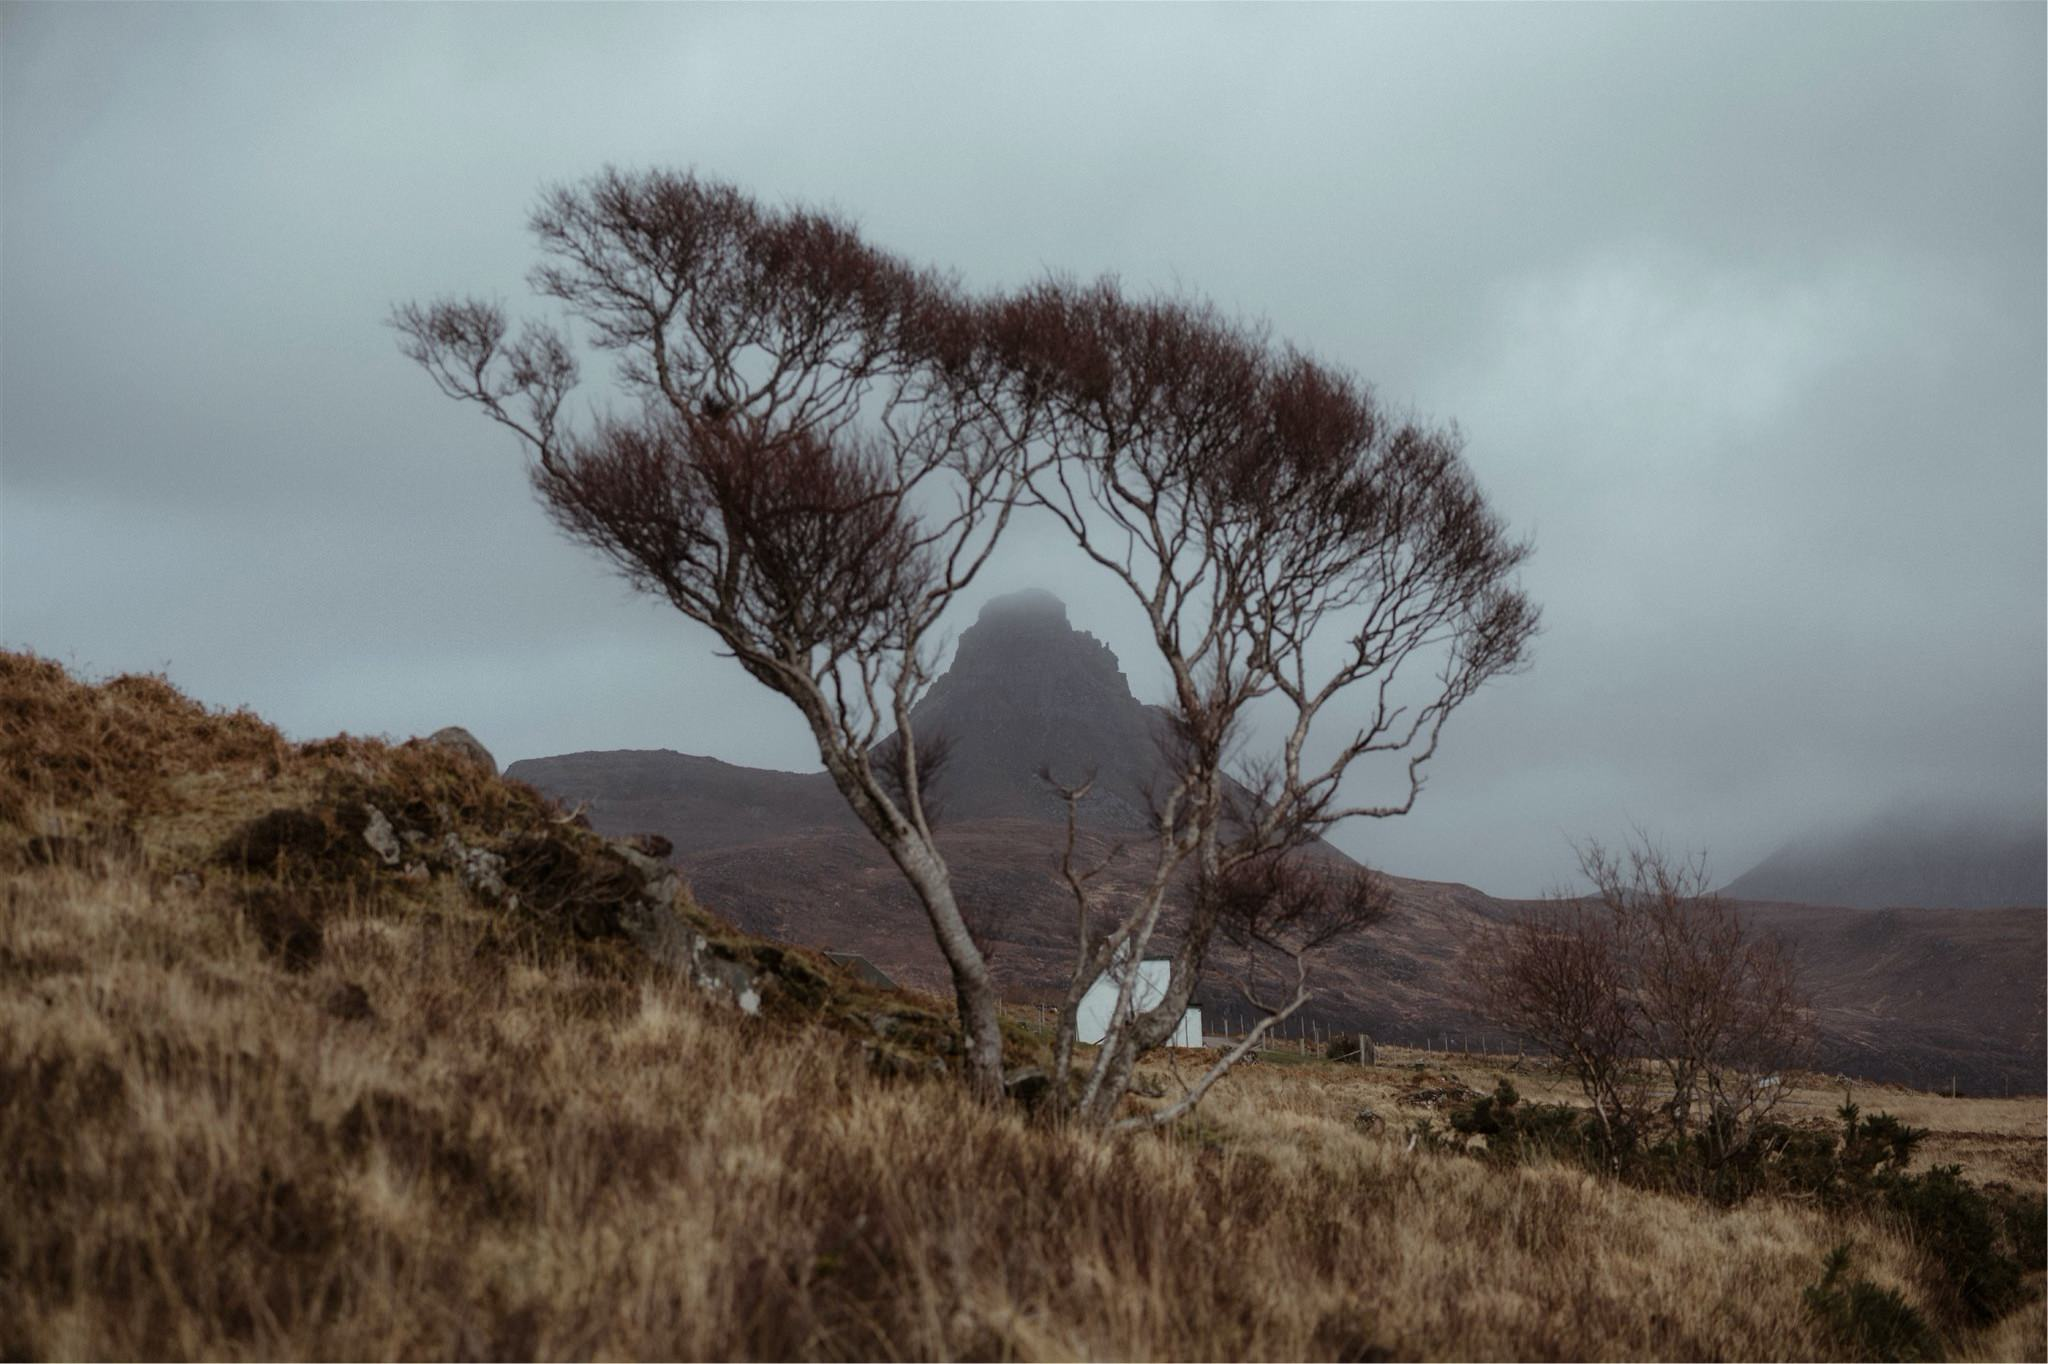 Landscape shot of a tree, cottage and mountain in Assynt, Scotland